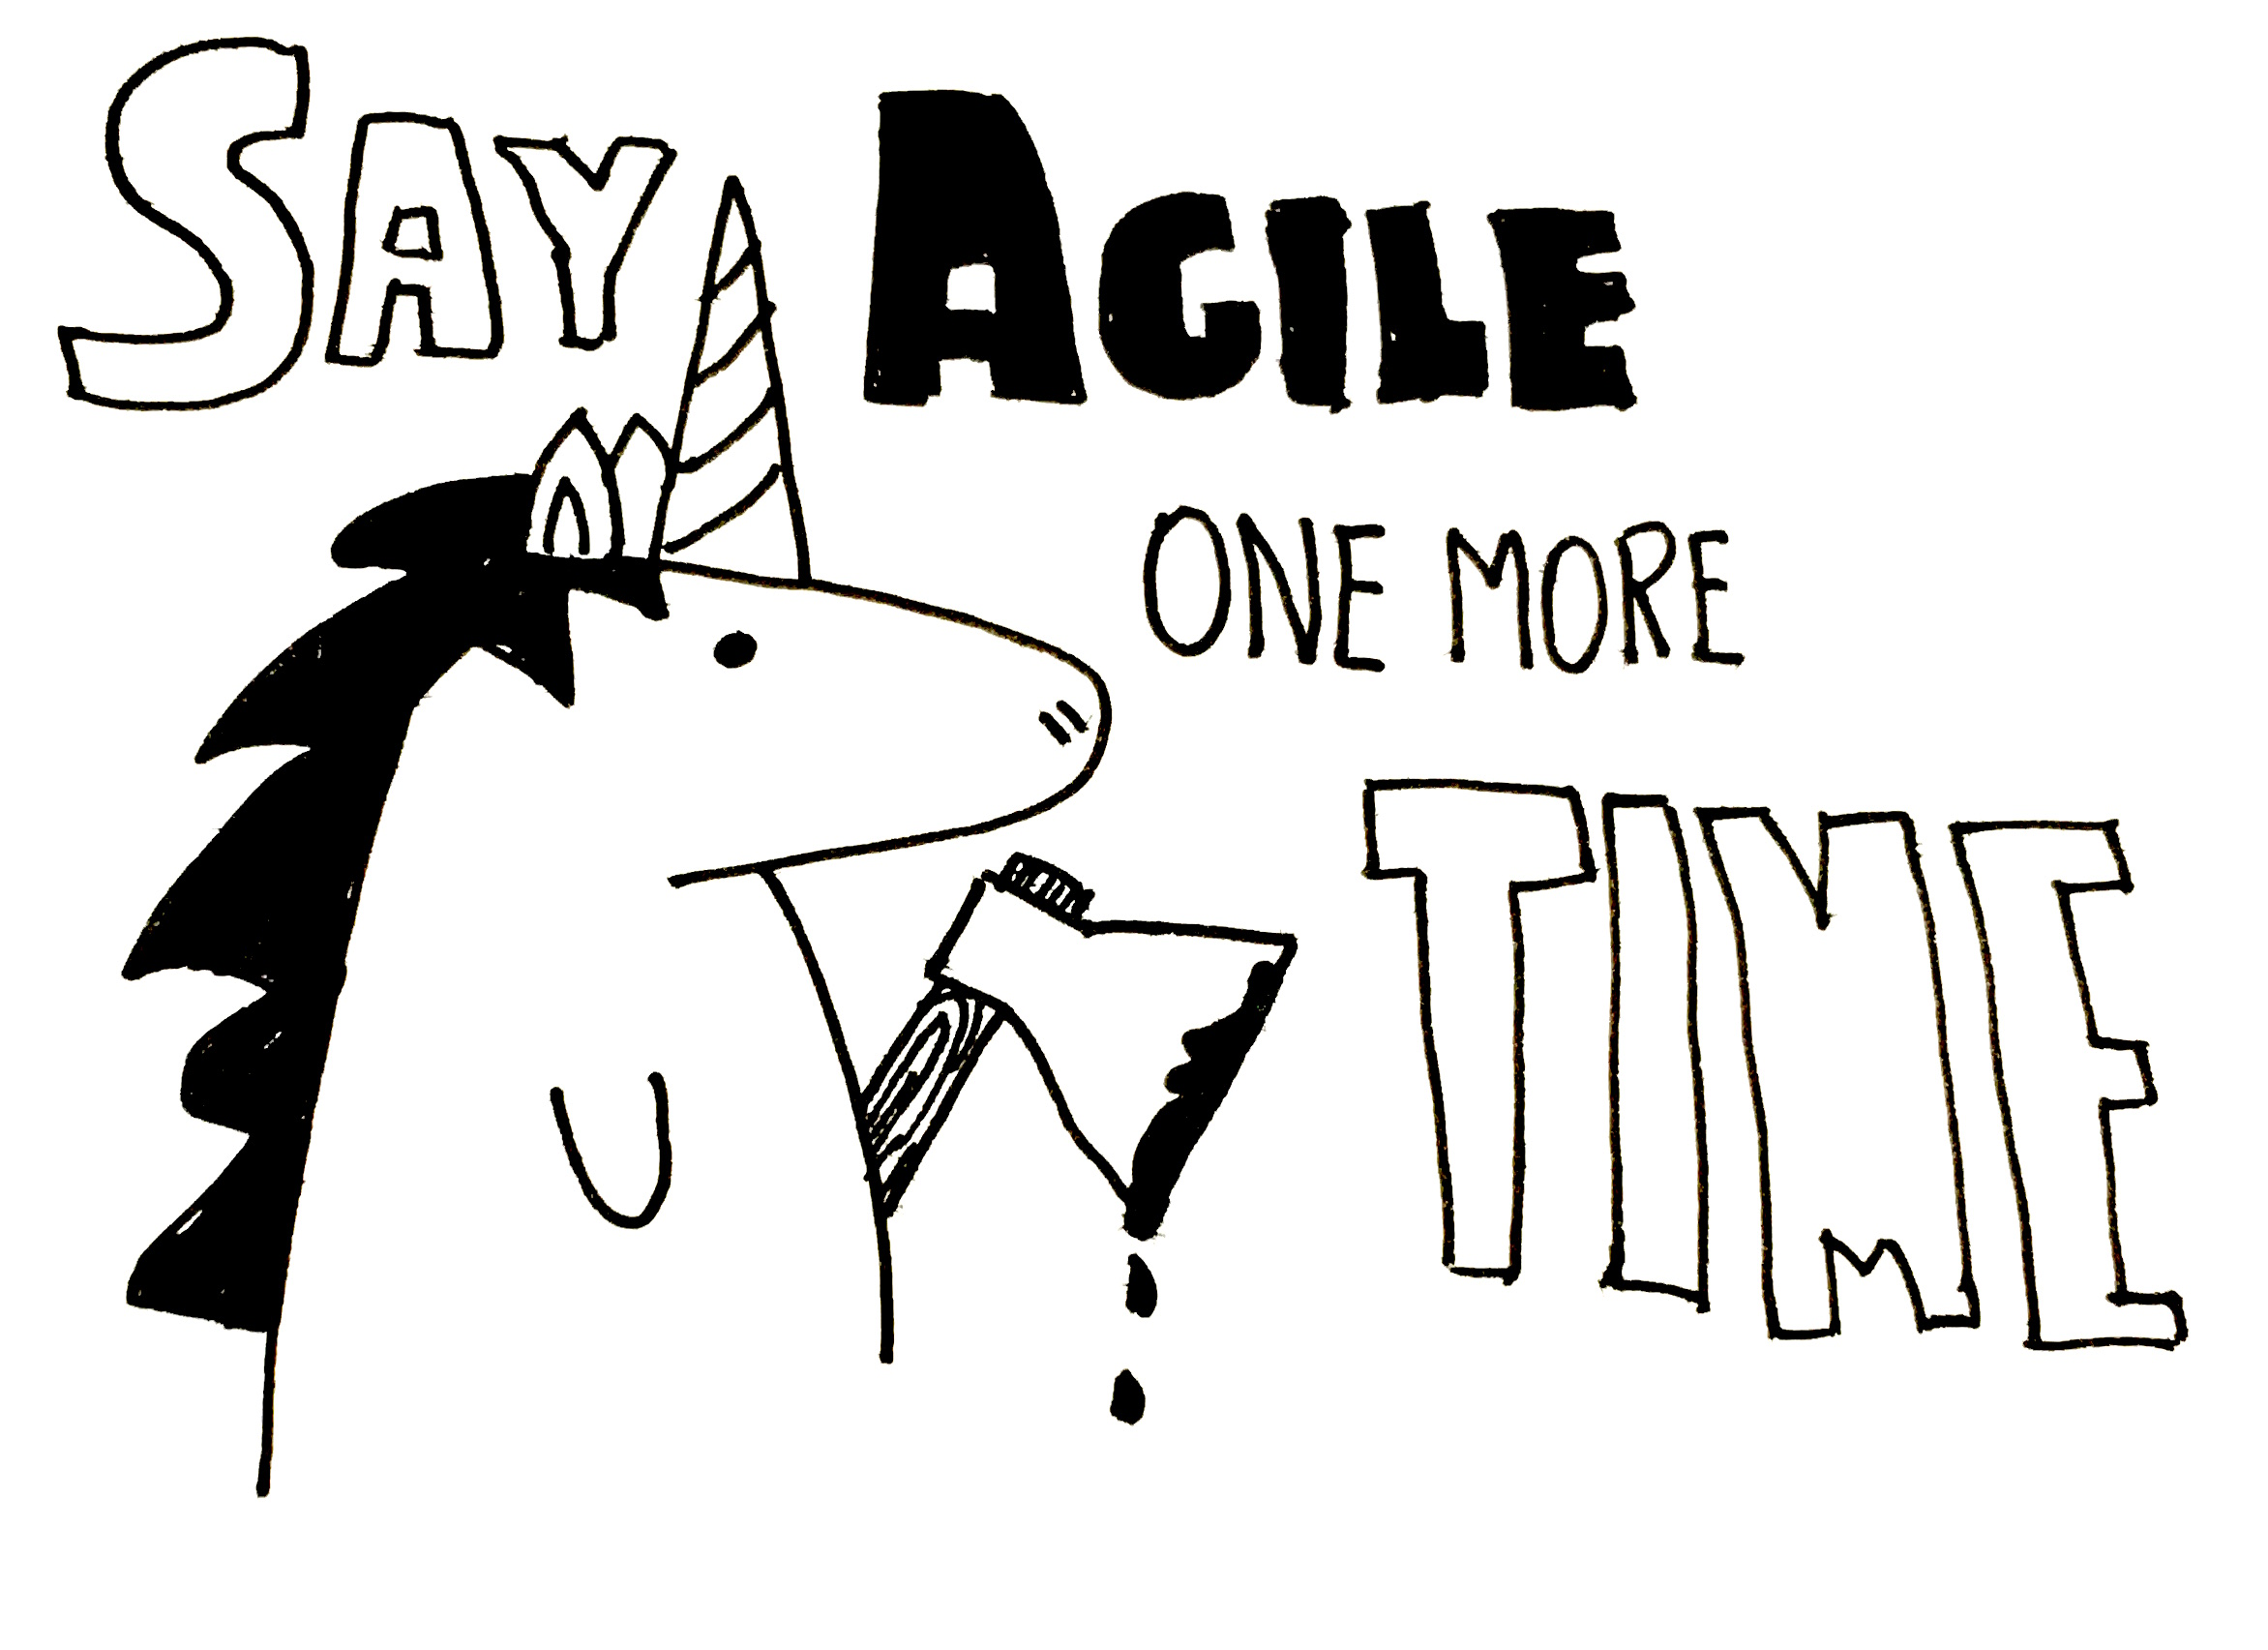 Say Agile One More Time Tisquirrel